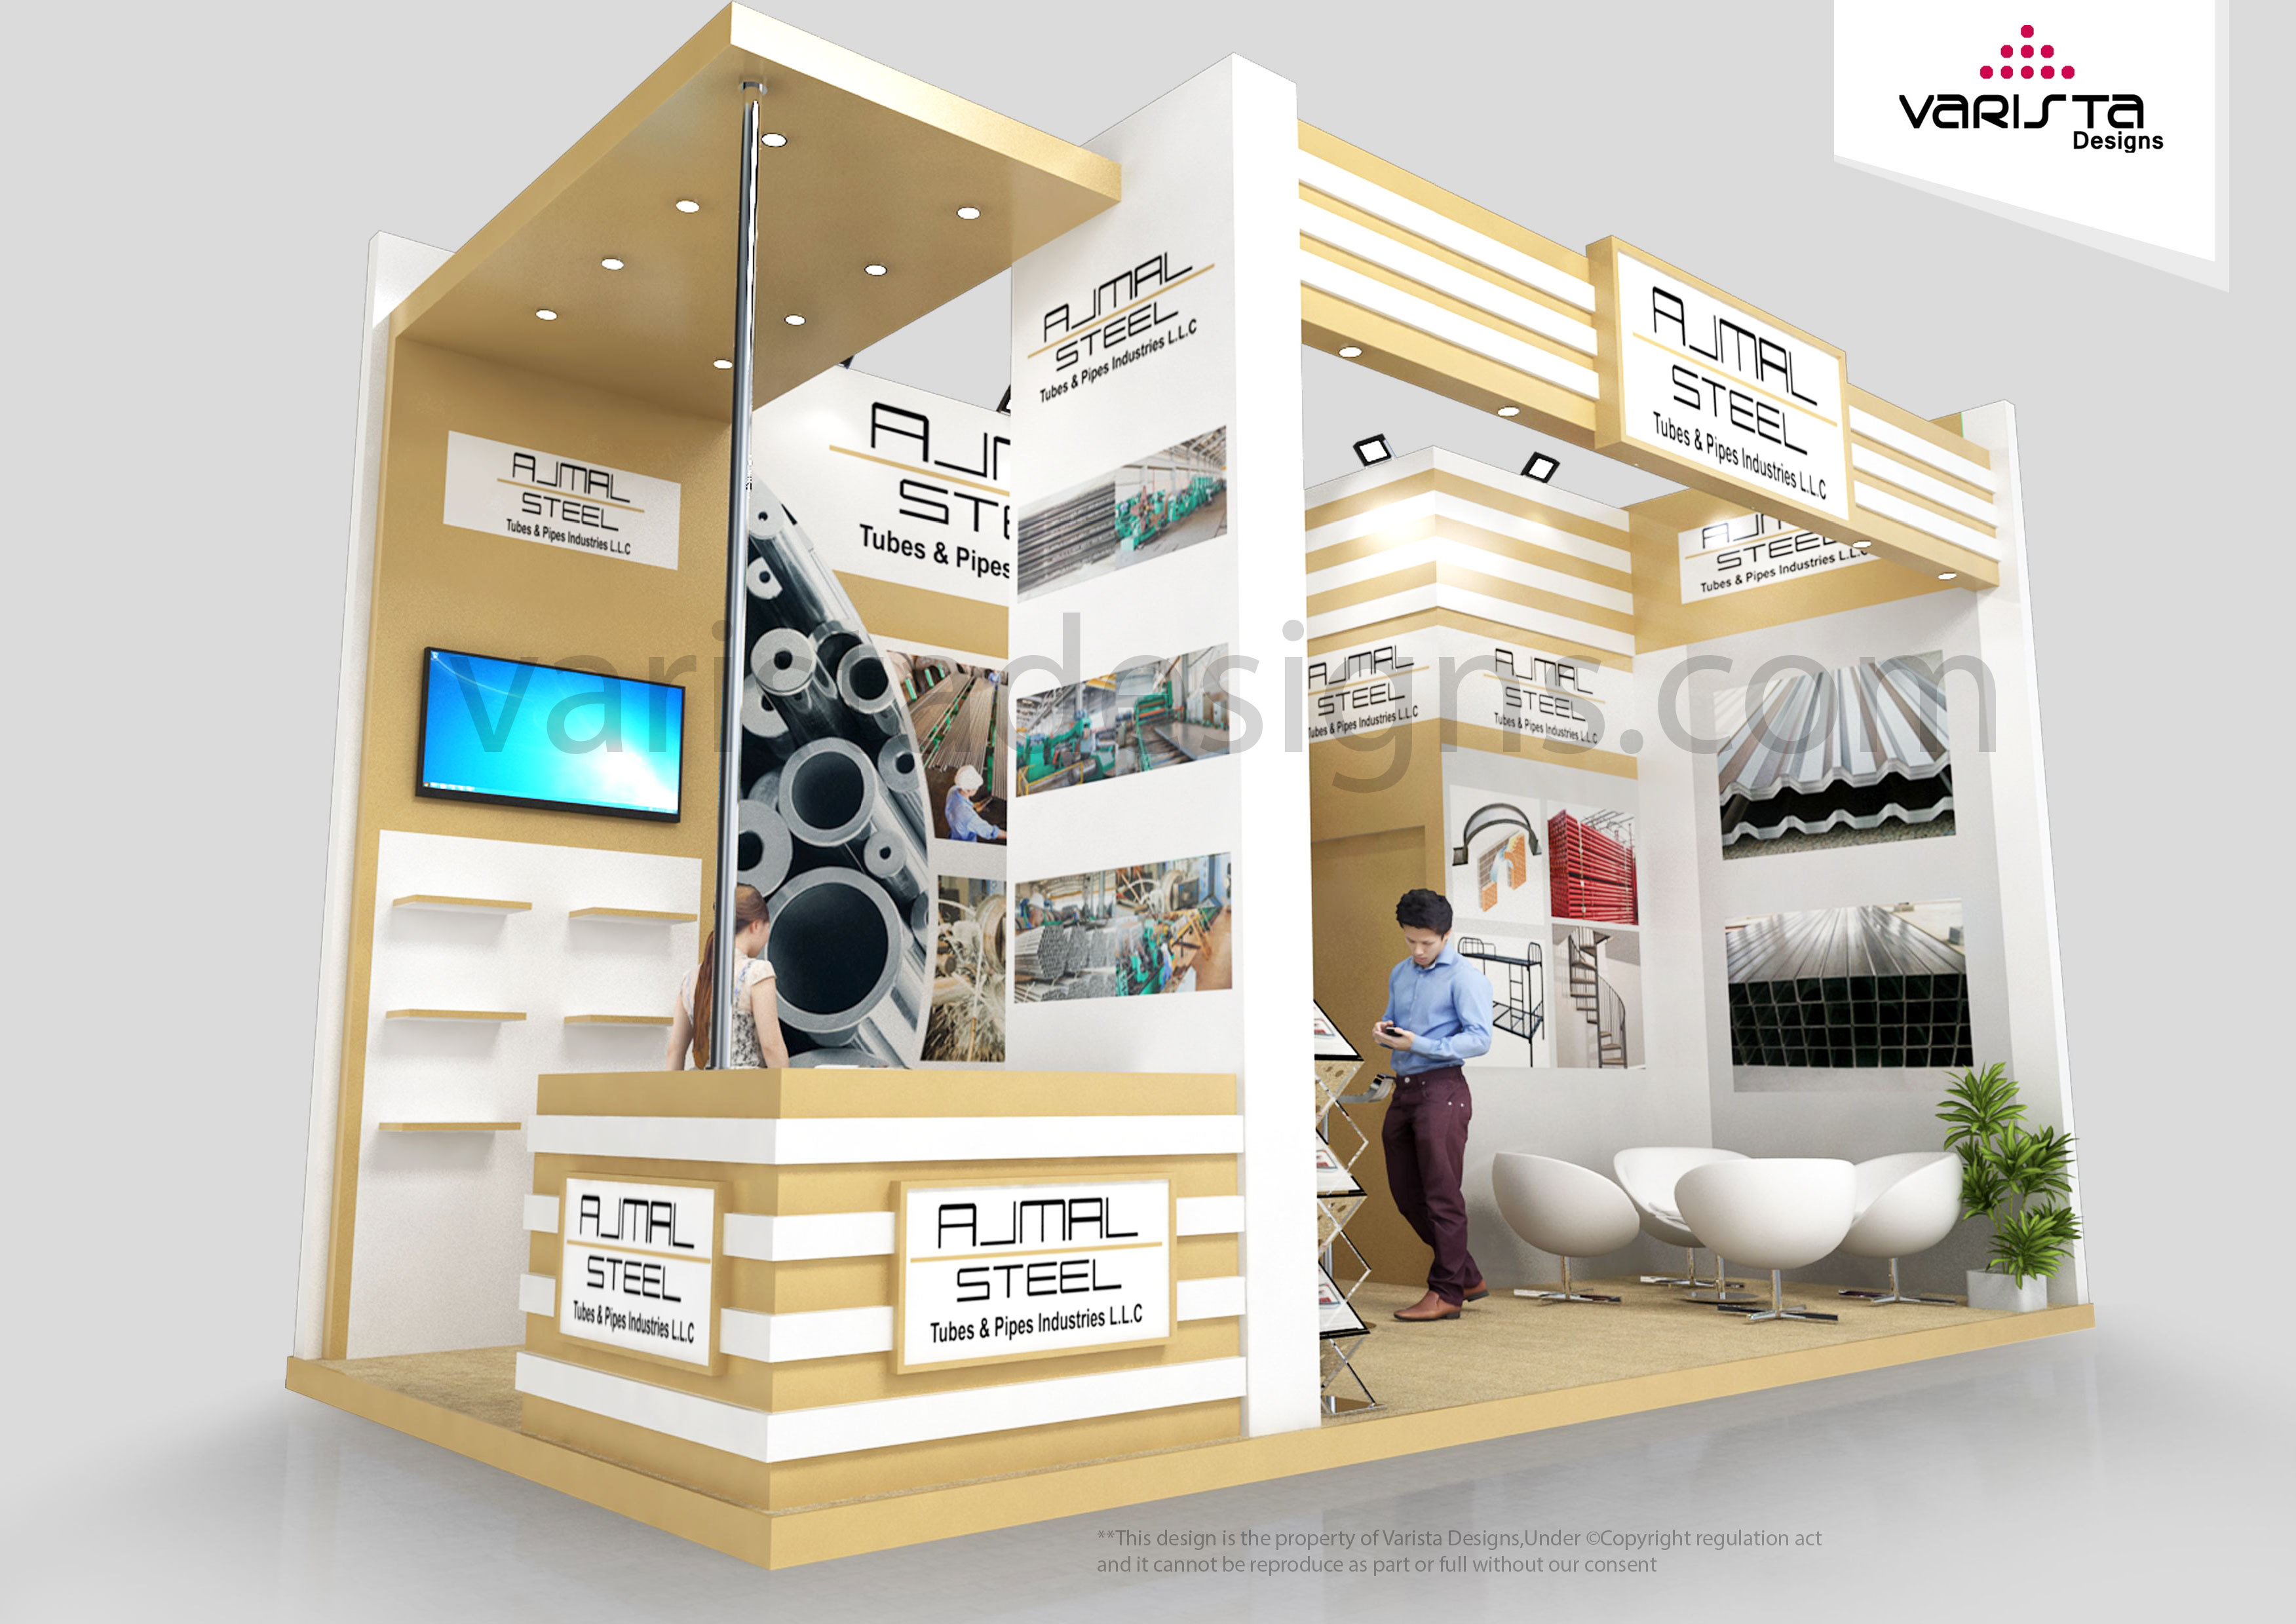 Ajmal Steel tubes & pipes industries exhihition stand design at Big5 Dubai